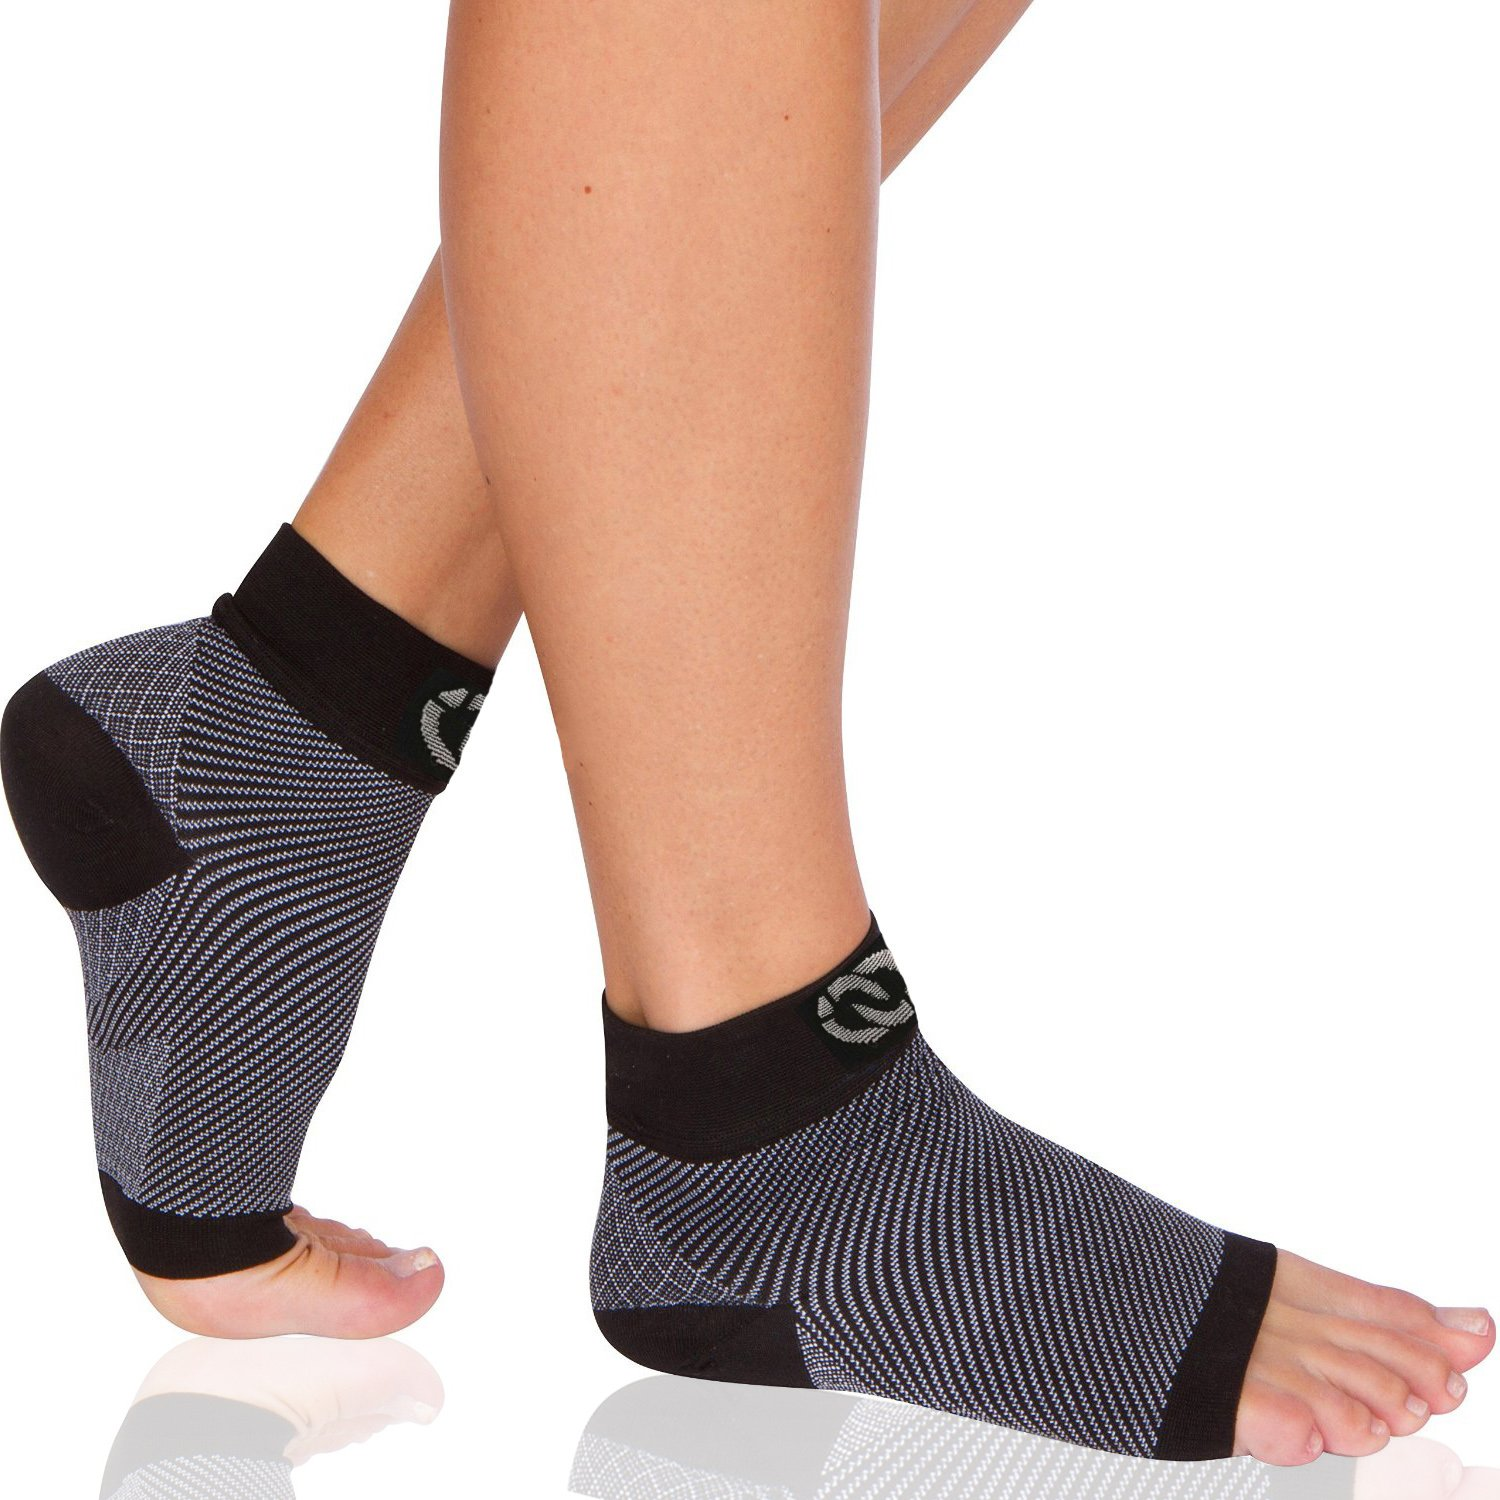 Compressions Plantar Fasciitis Socks (1 Pair) Foot Sleeves with Arch & Heel Support Treatment for Men & Women - Best to Brace Insoles for Relief (Small) by Compressions (Image #1)